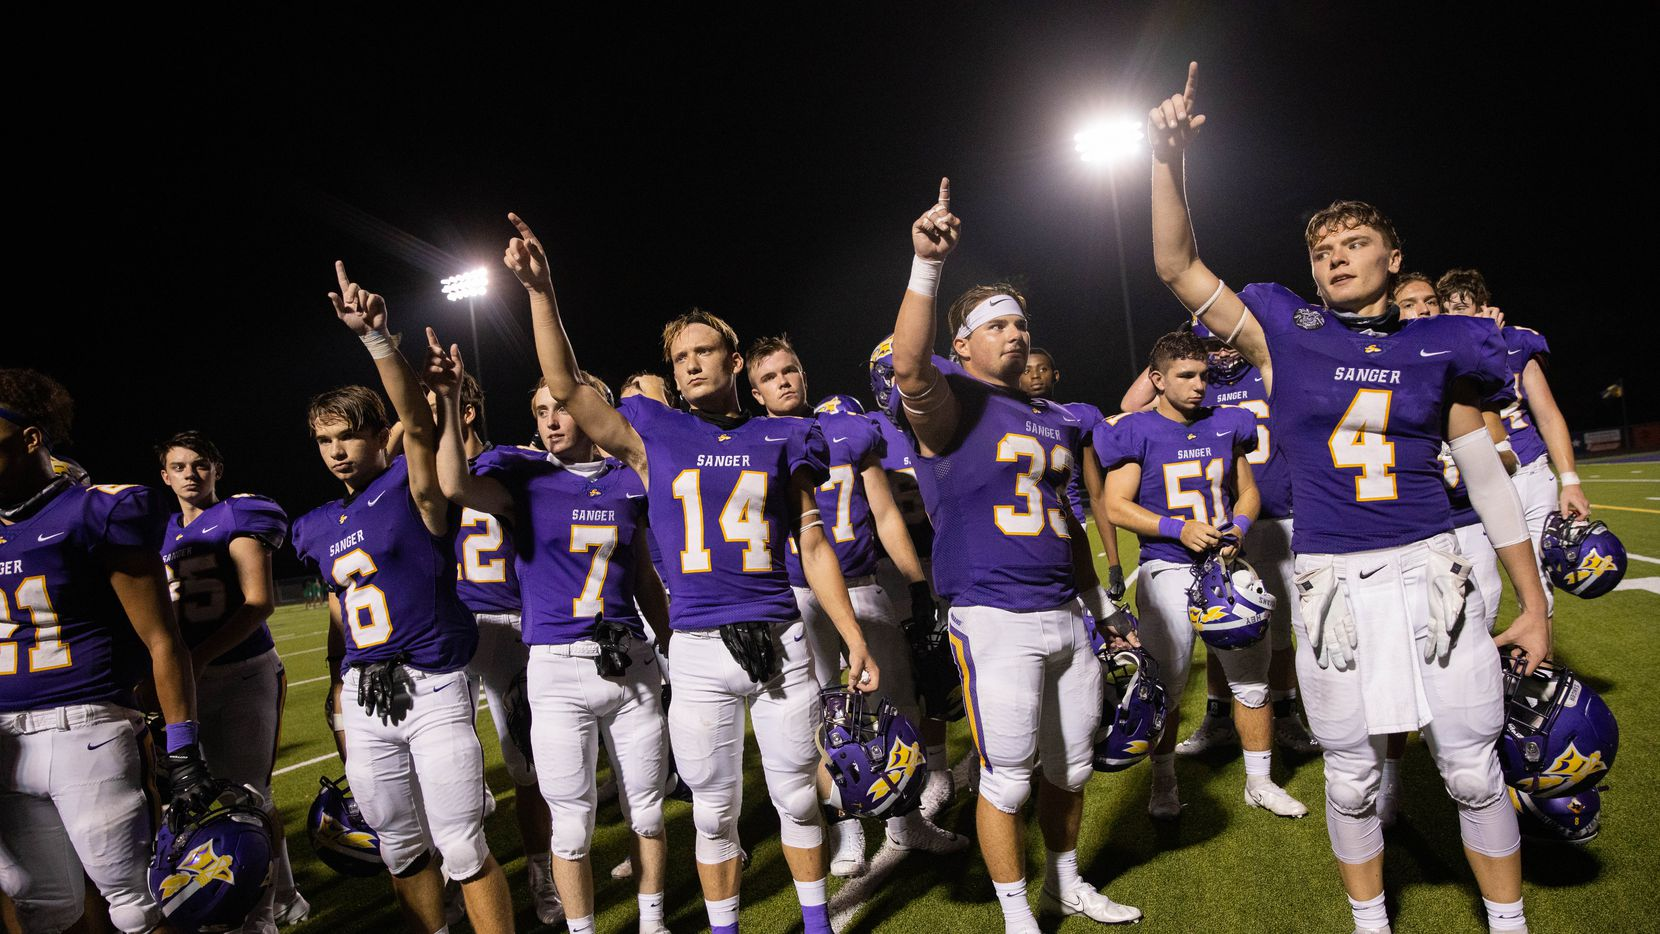 Sanger High School players celebrate after winning against Lake Worth High School on Sept. 4, 2020 in Sanger. Sanger won 49-35.